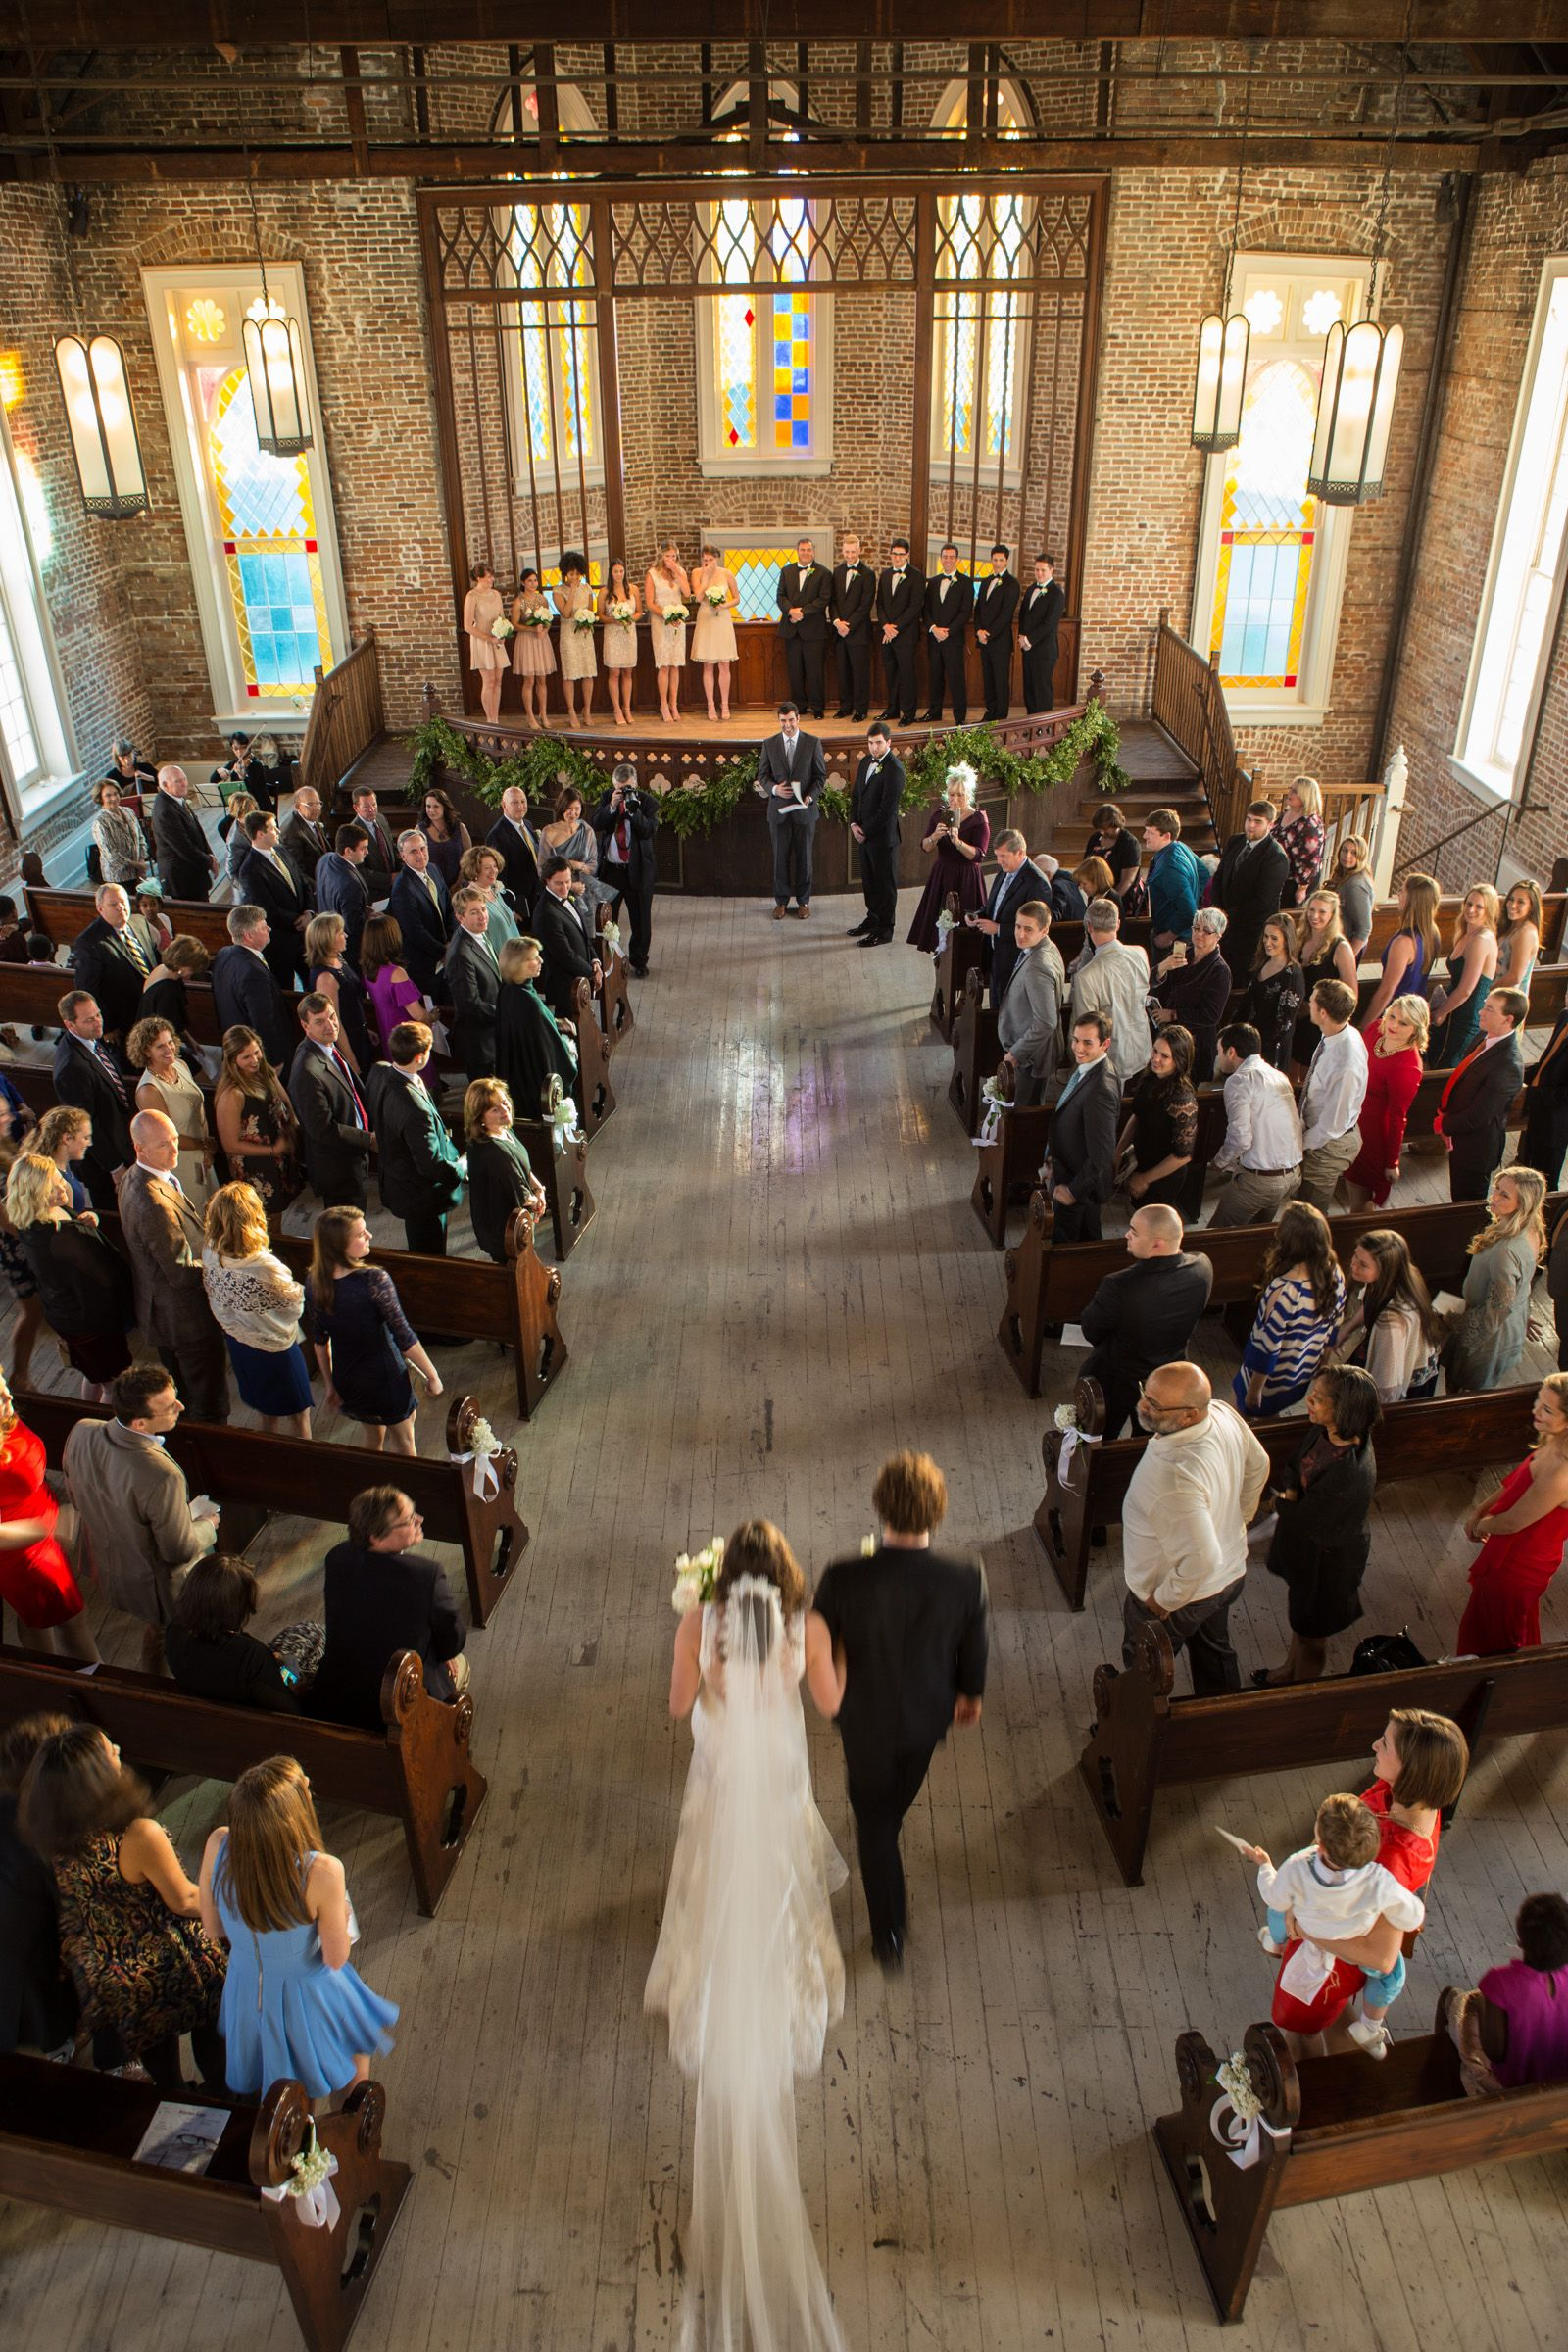 Pin by Felicity Church on Ceremonies | New orleans wedding ...